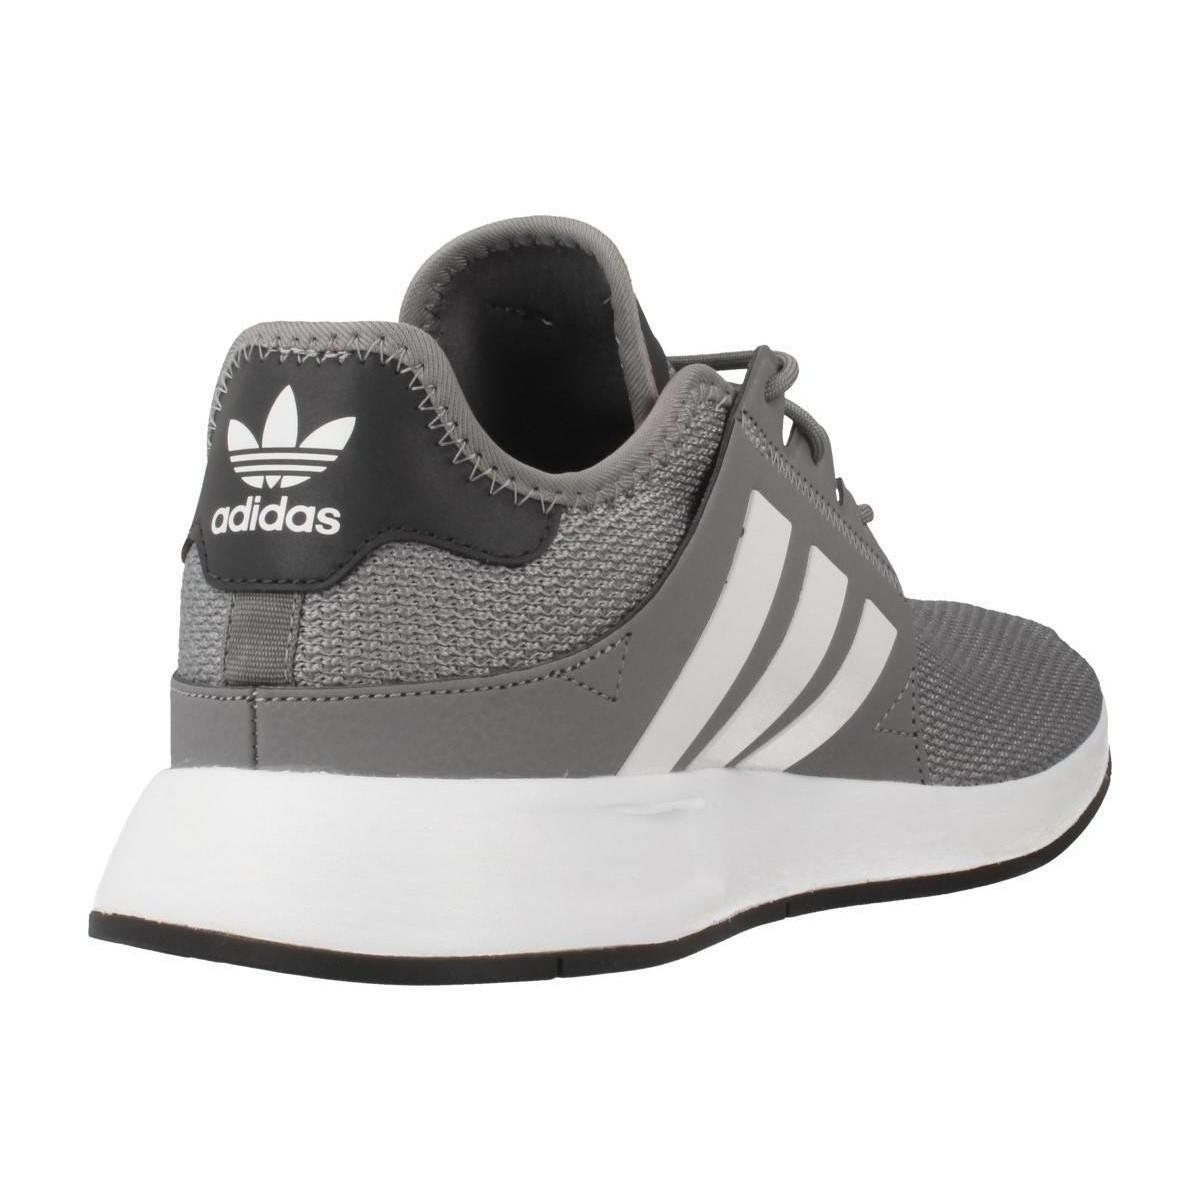 reputable site 5faaf 4297b adidas Cq2408 Men's Shoes (trainers) In Grey in Gray for Men ...